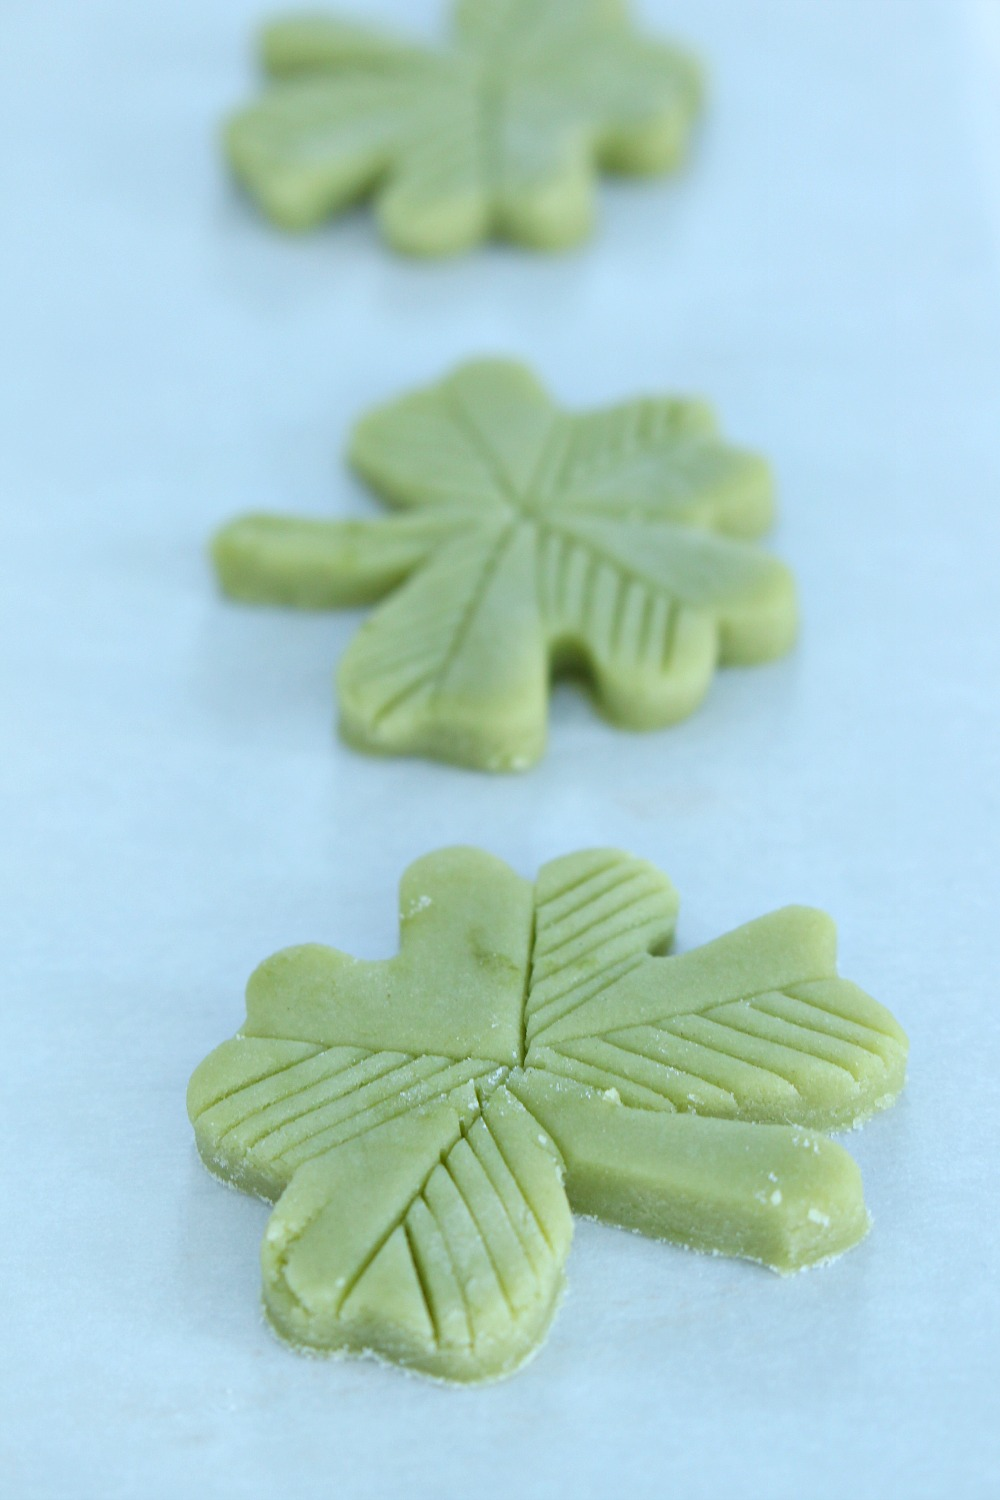 Make four leaf clover shaped cookies